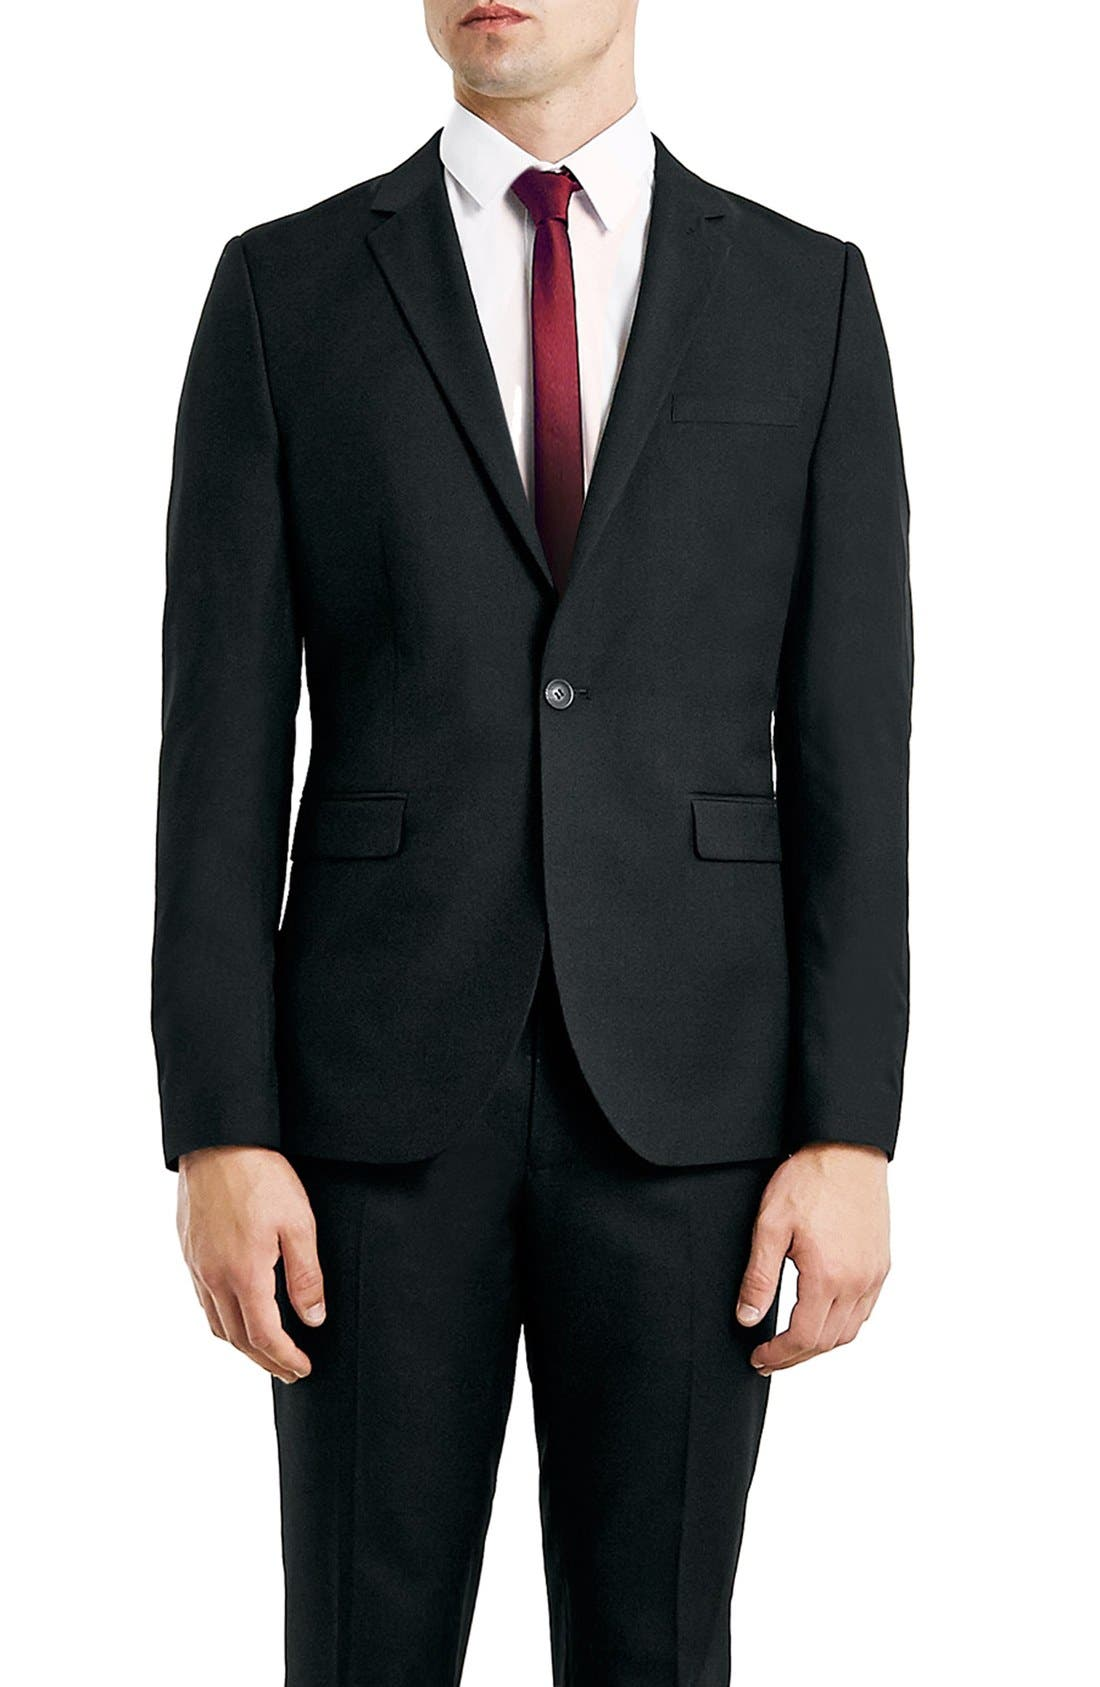 Alternate Image 1 Selected - Topman Skinny Fit Black One-Button Suit Jacket